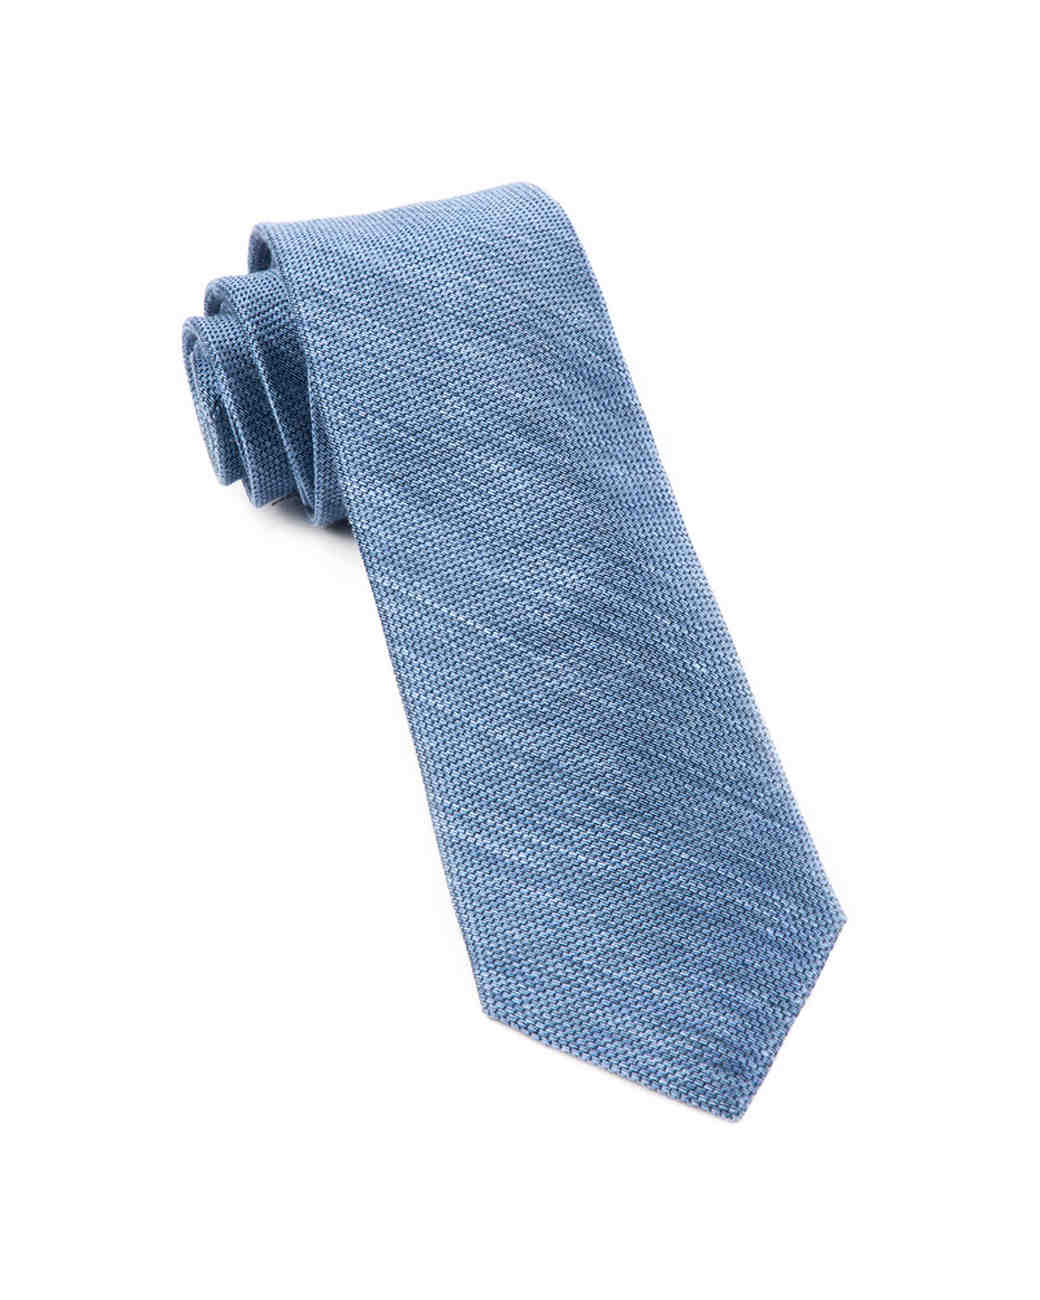 The Tie Bar X Destination Hotels Capsule Blue Chambray